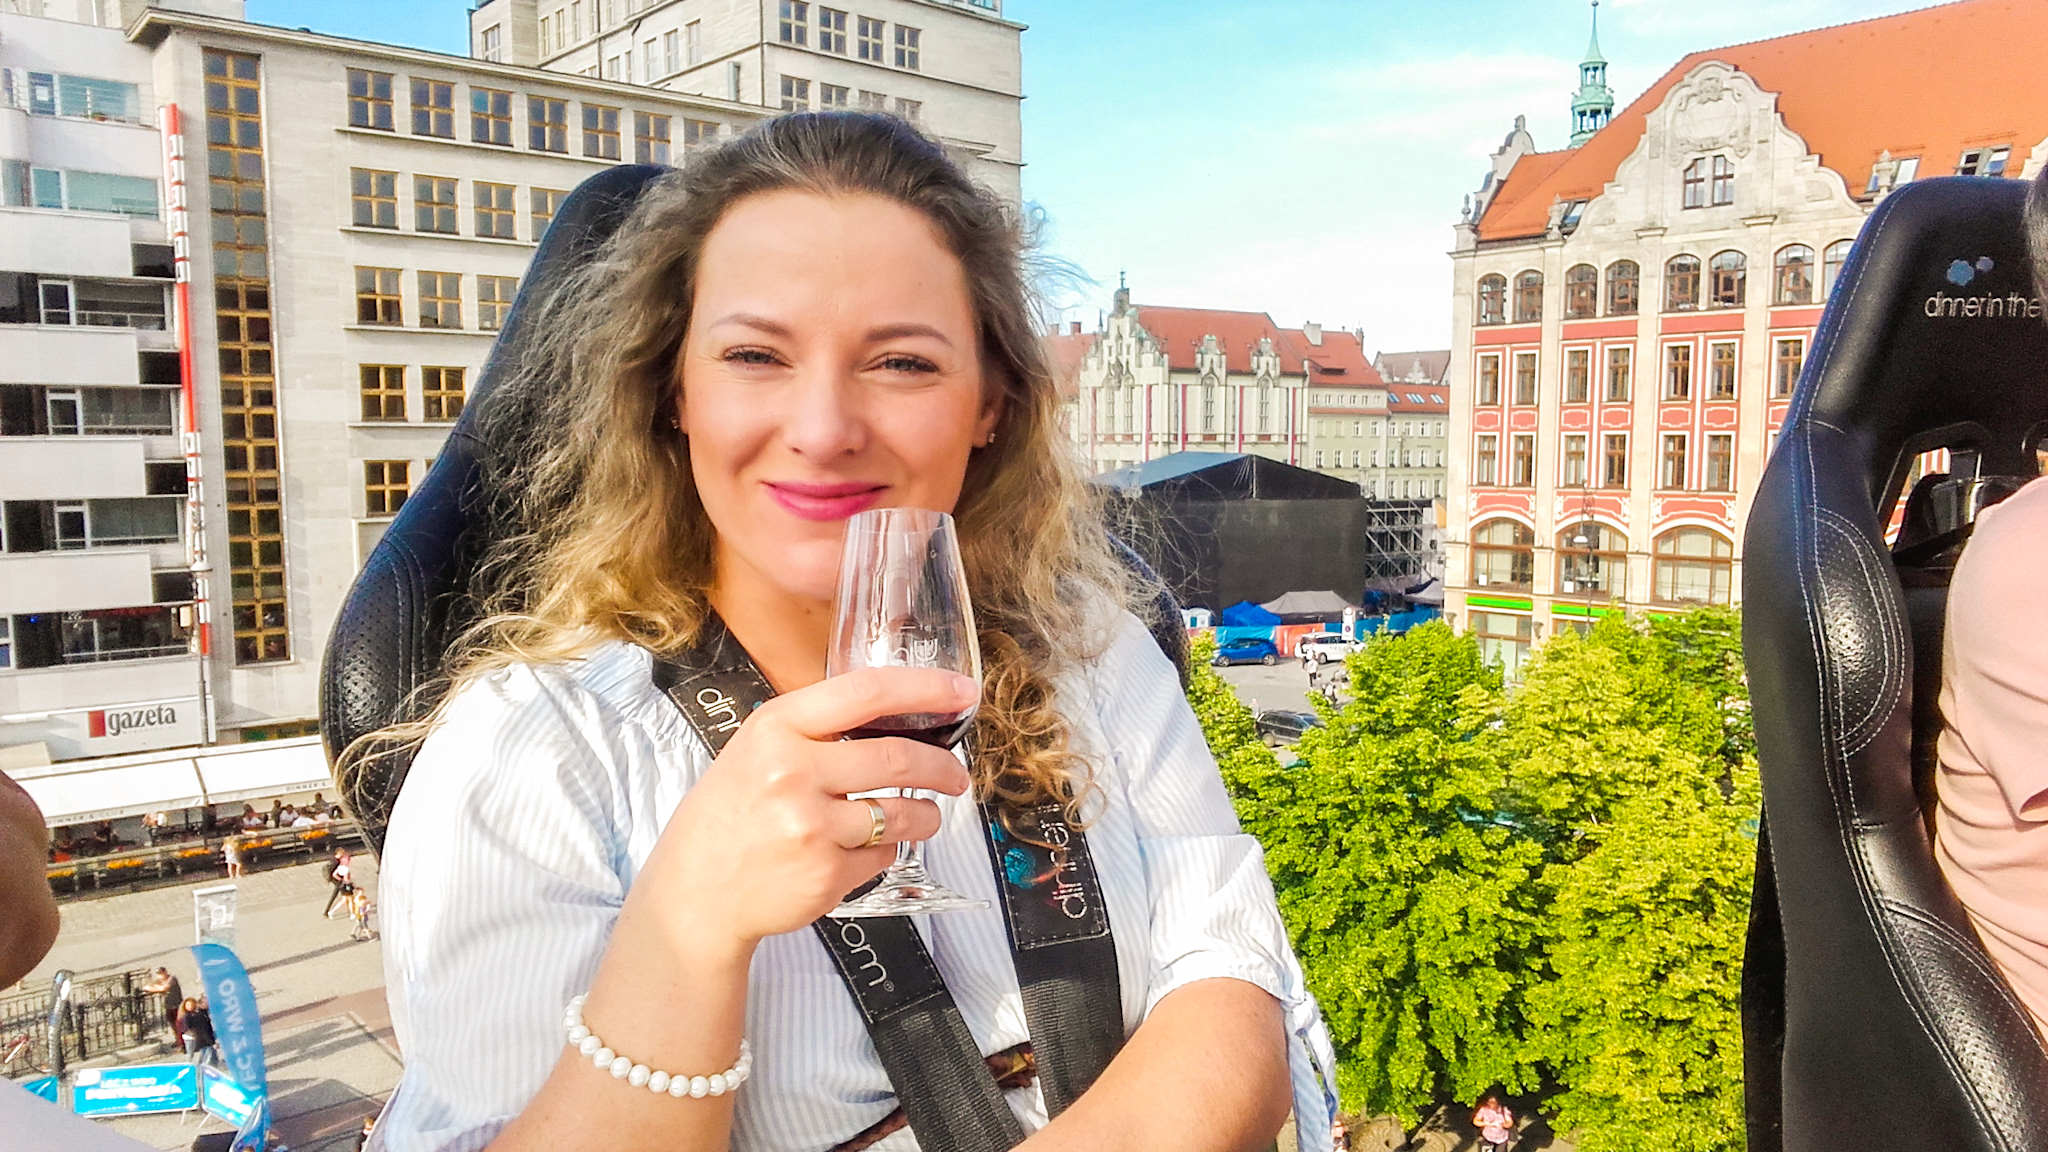 wine in the sky dinner in the sky wrocław wine tasting angellovesdreams winnice dolnośląskie